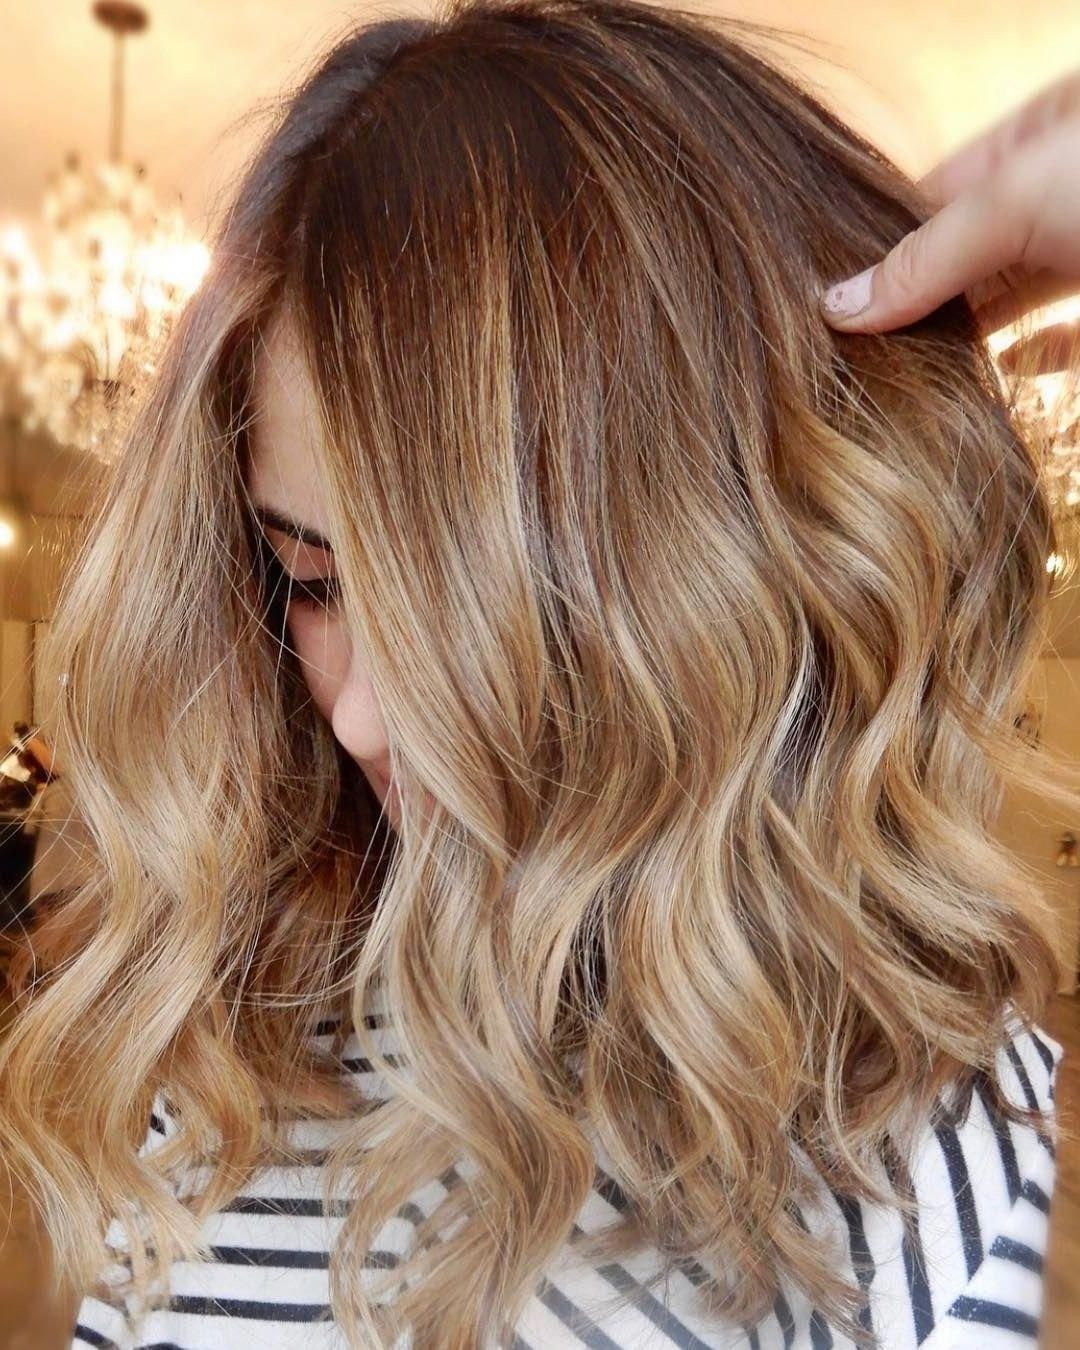 50 Golden Blonde Hair Color Ideas At Some Point You May Wonder